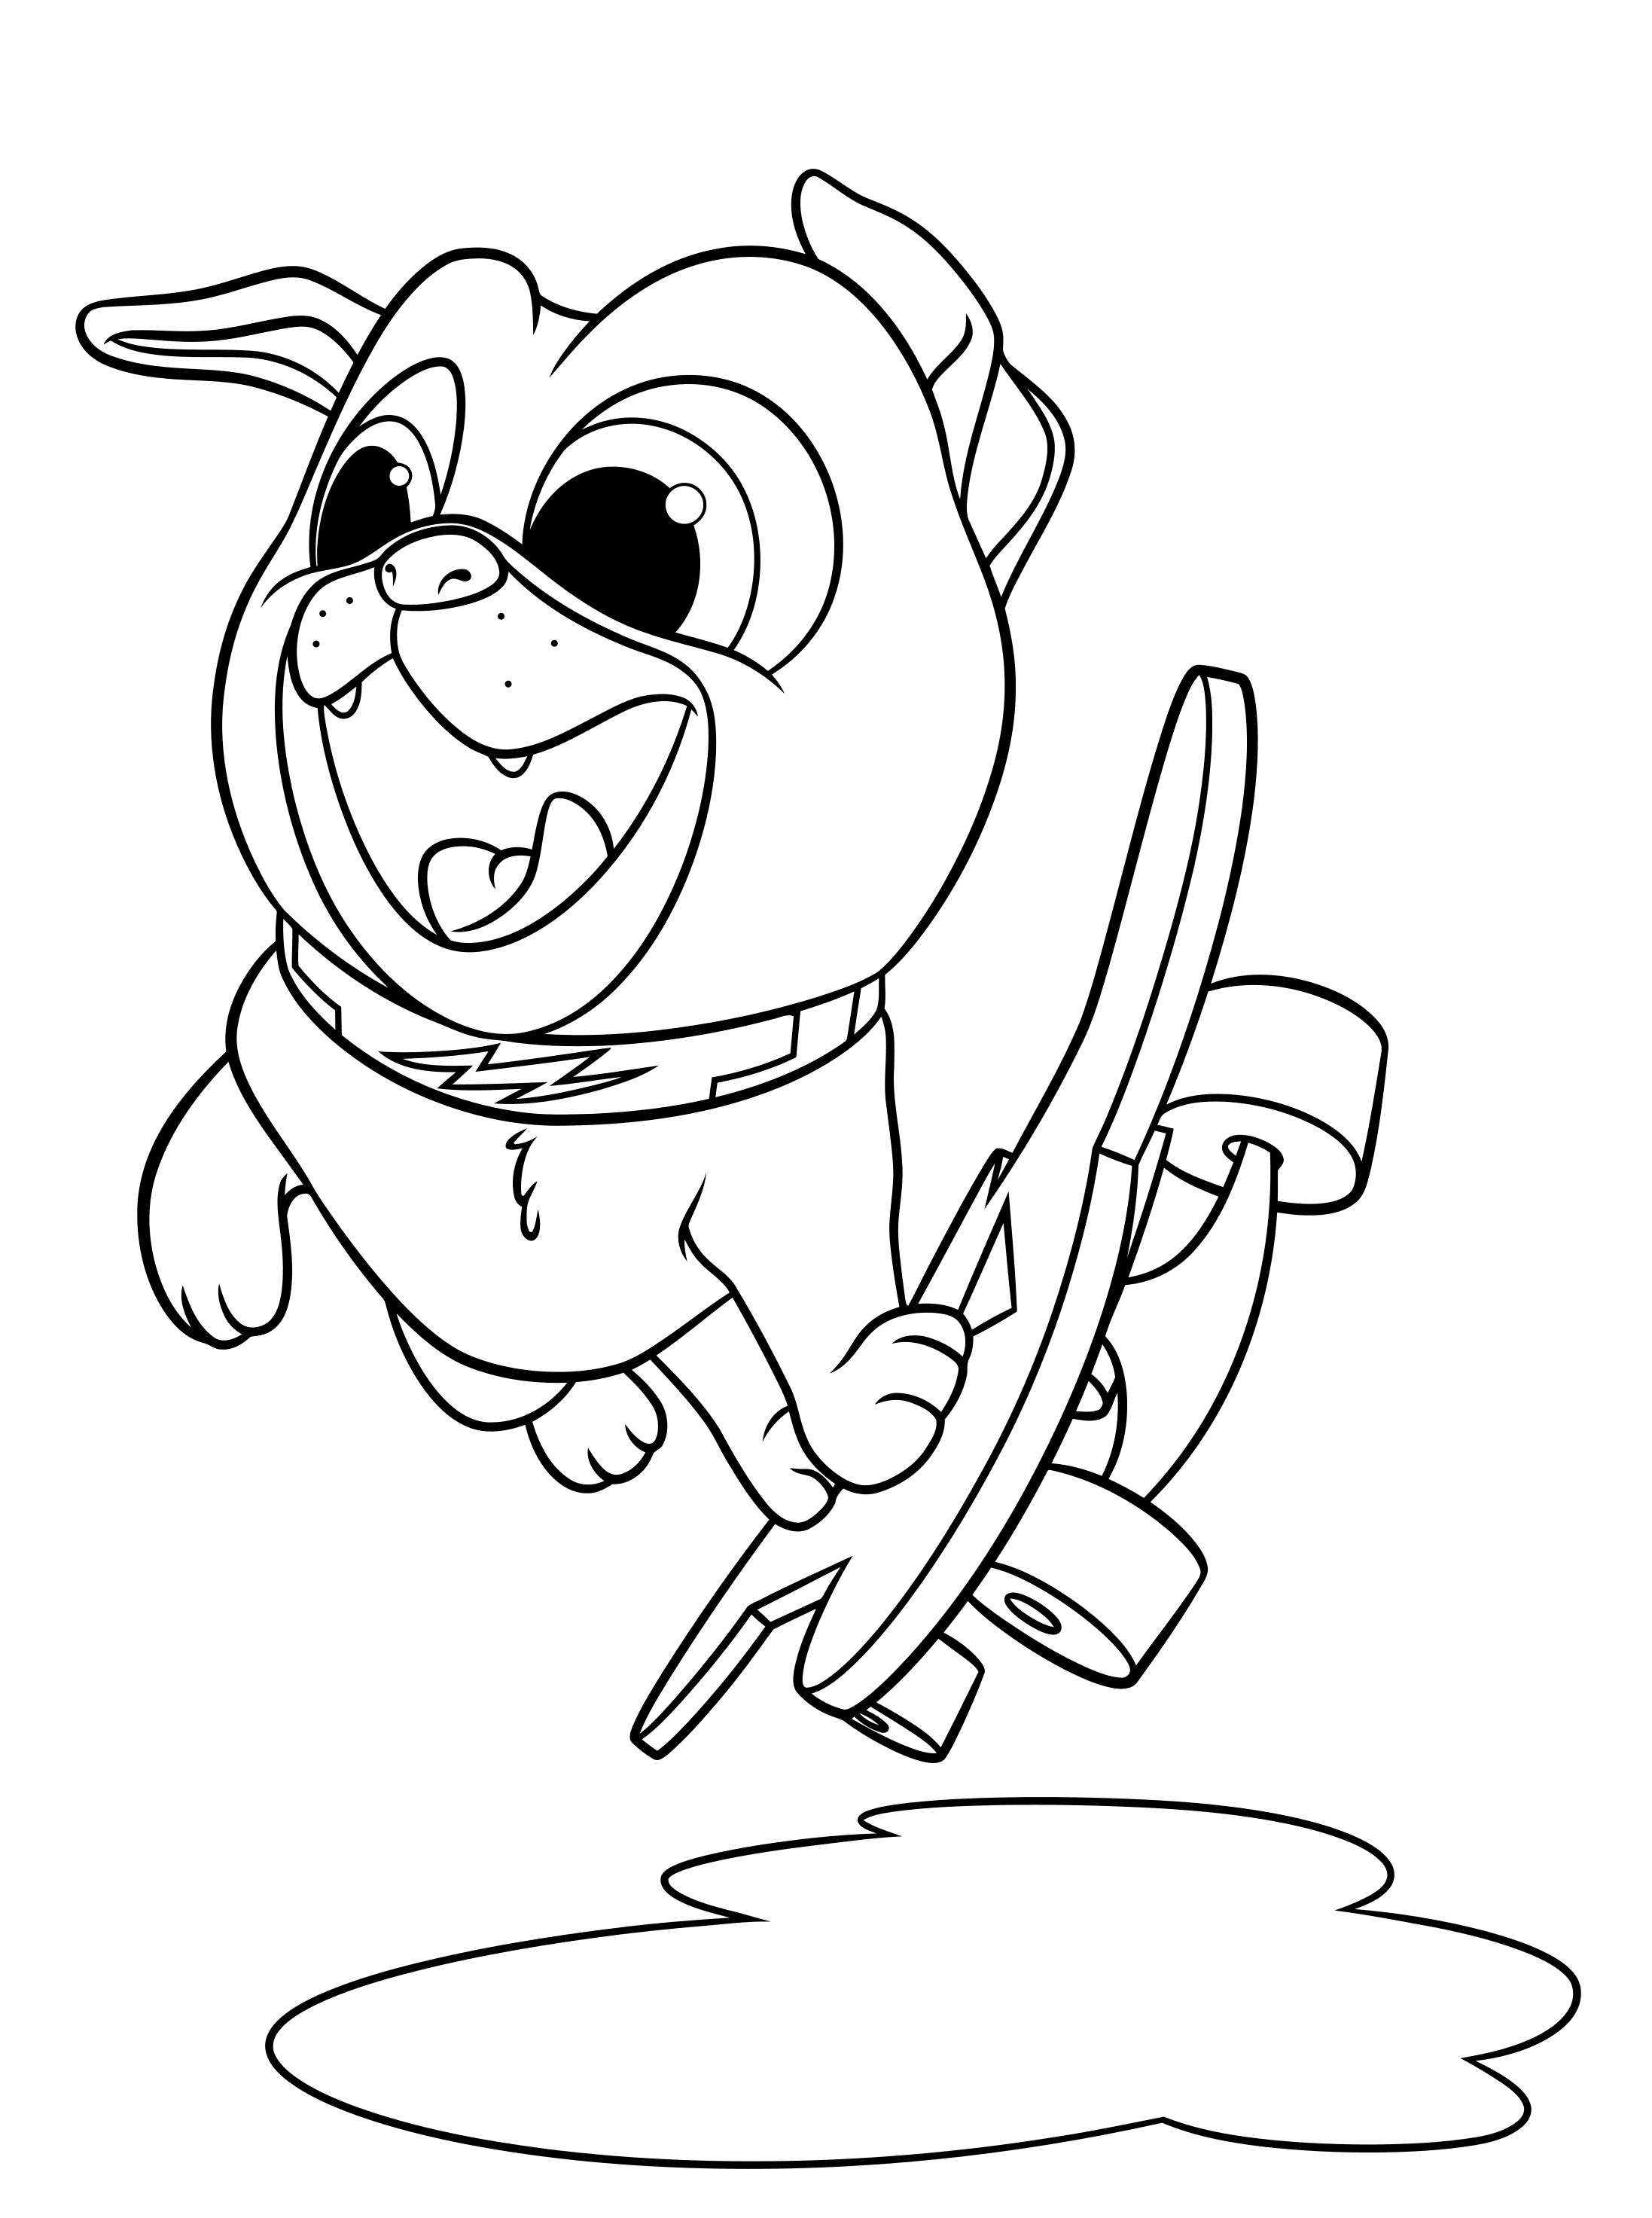 dog color page dogs 101 coloring pages download and print for free page dog color